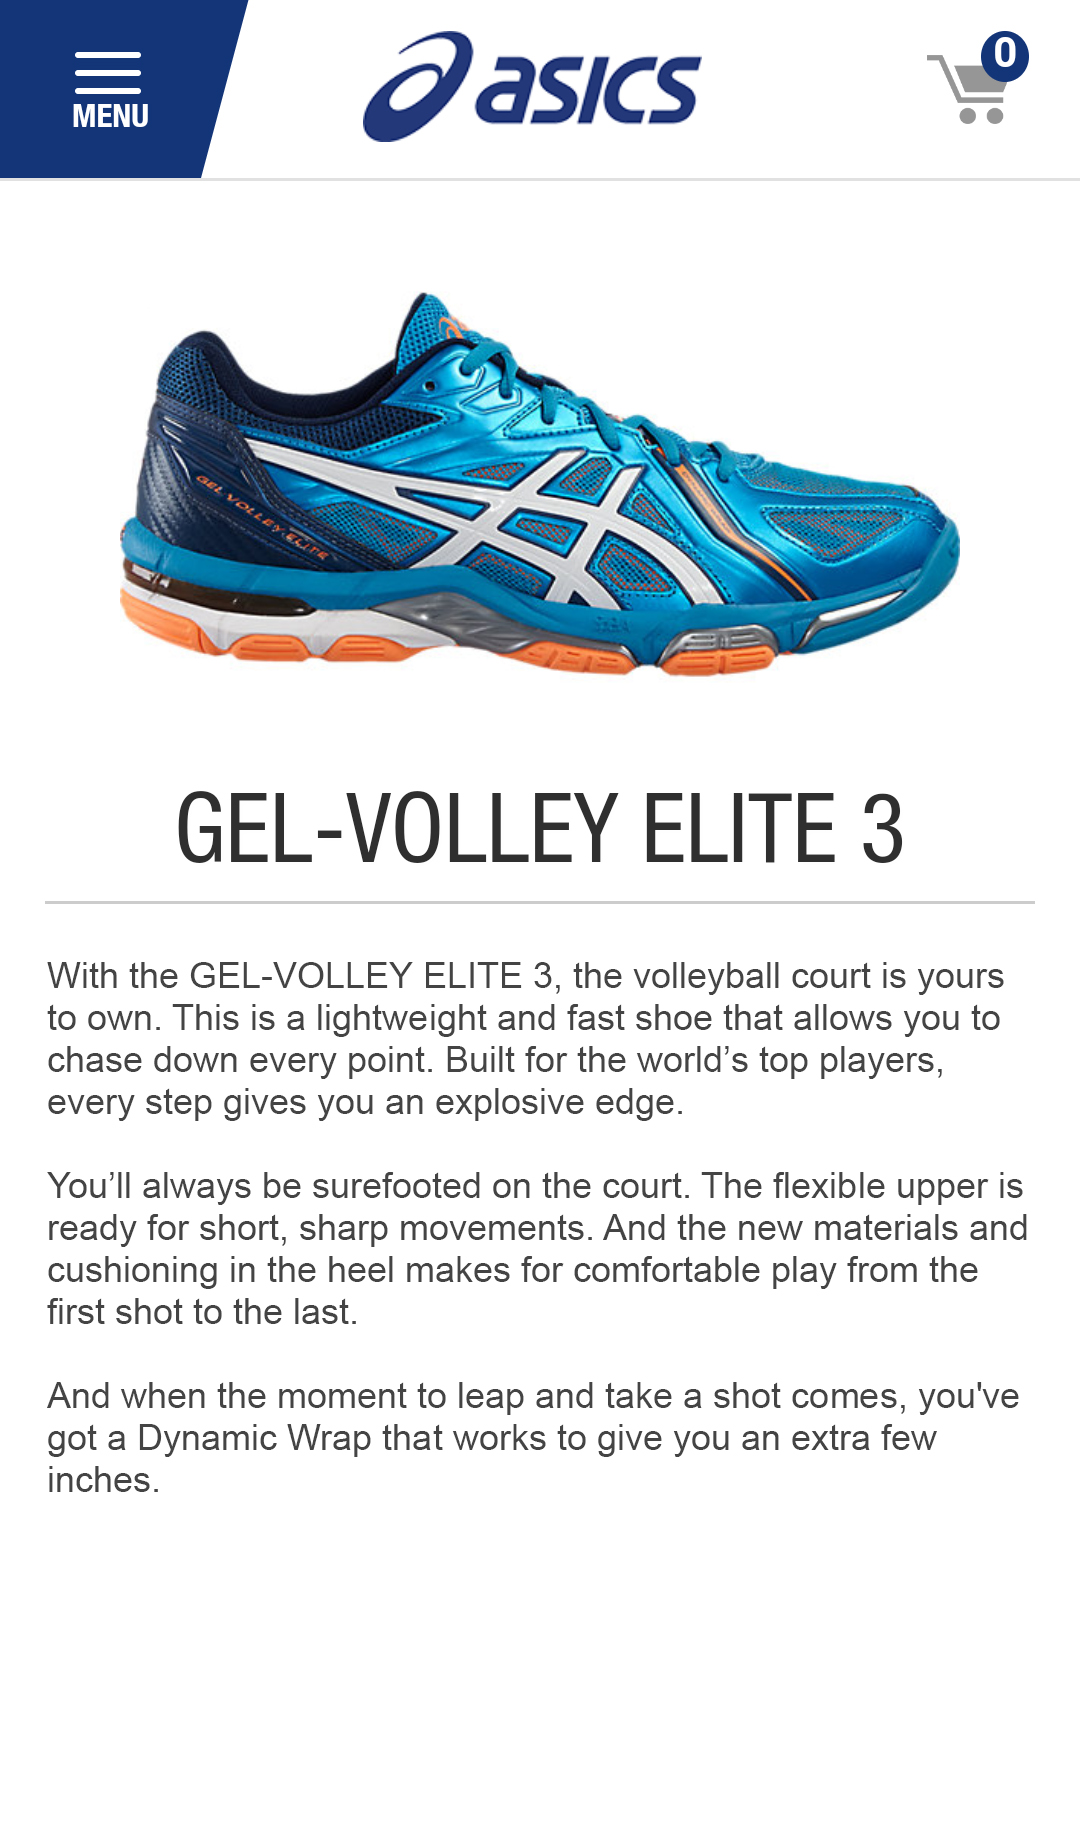 Gel-Volley screenshot